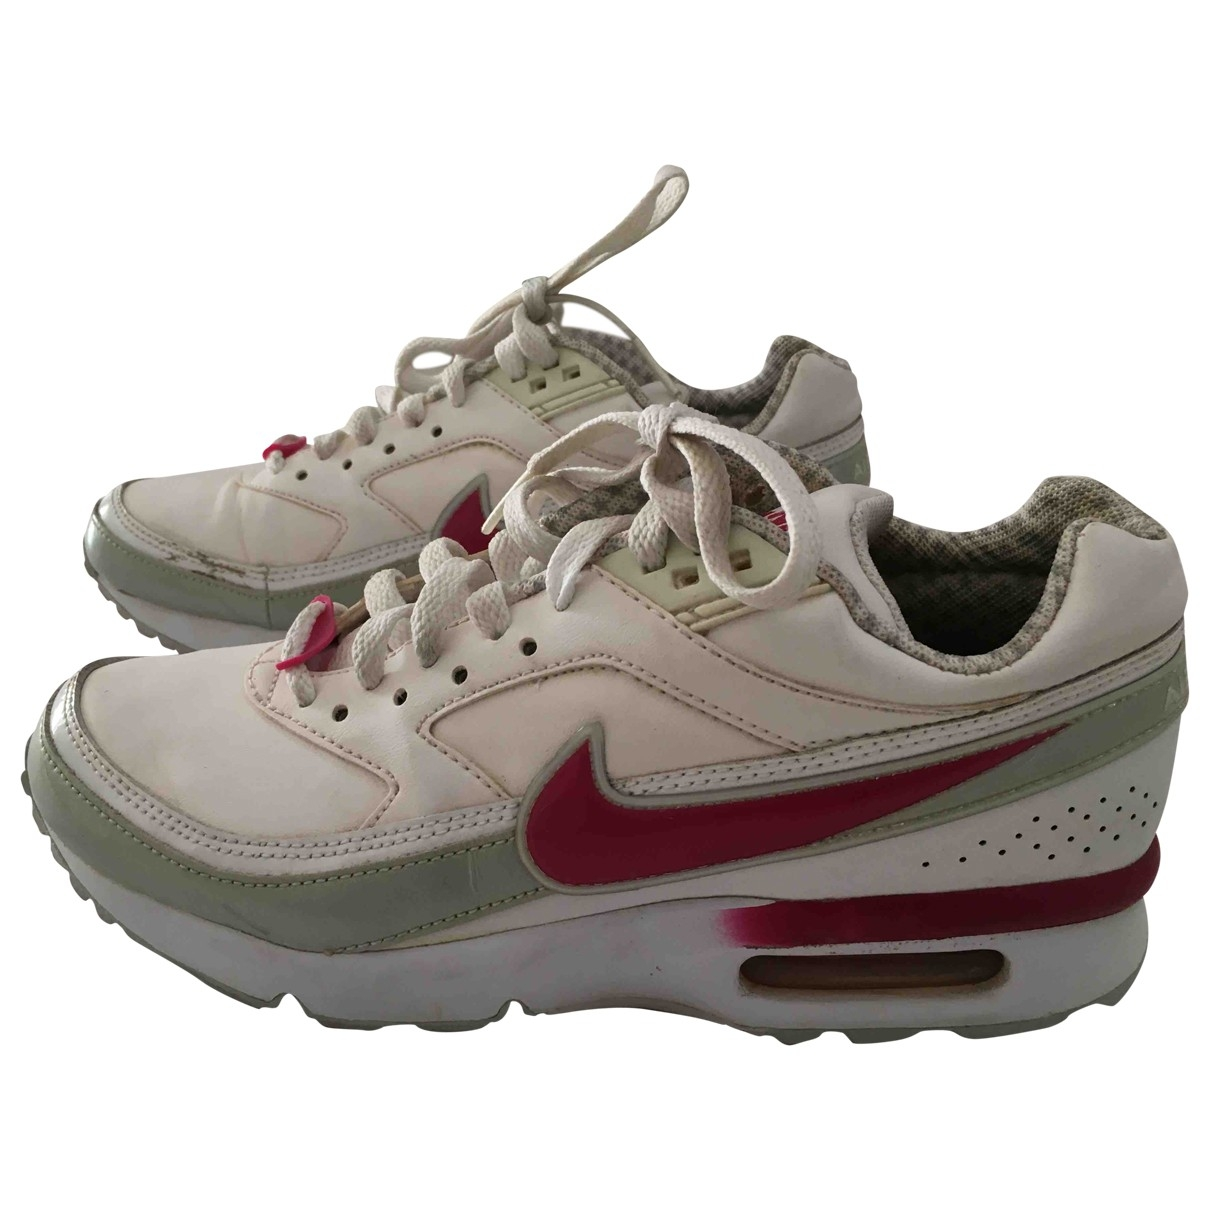 Nike Air Max  White Leather Trainers for Women 36.5 EU